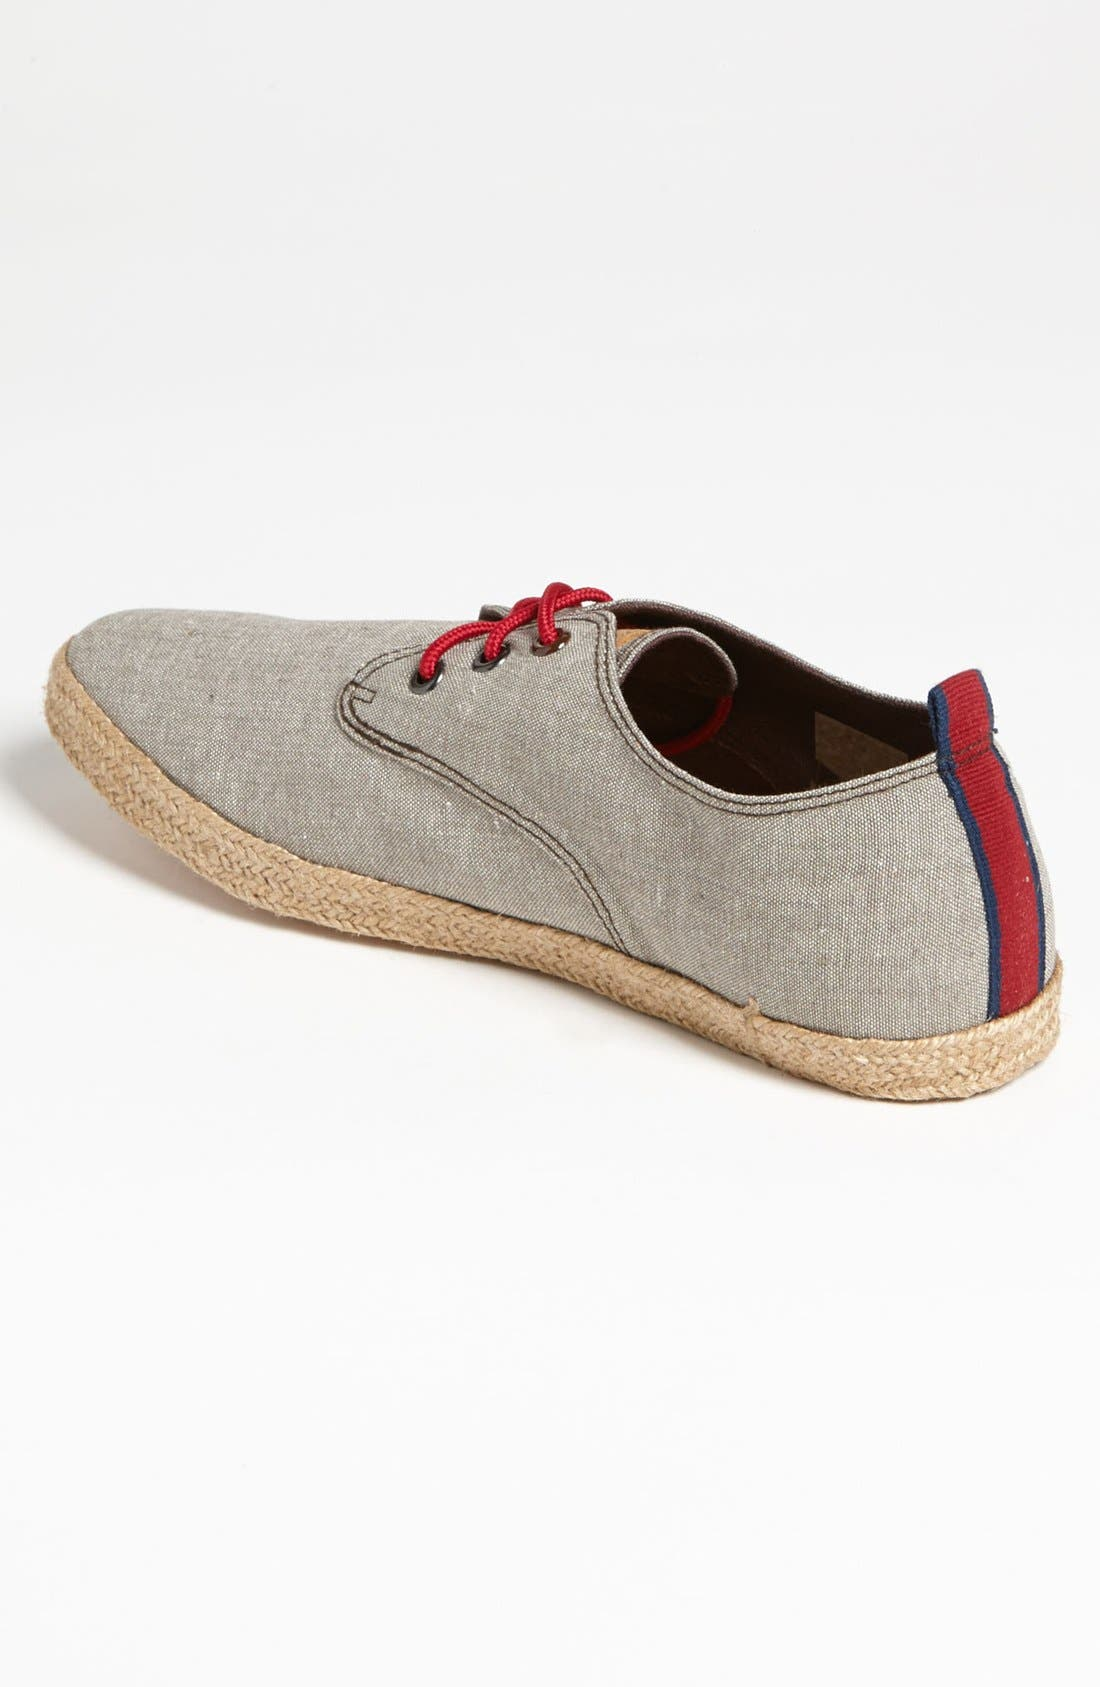 Alternate Image 2  - Ben Sherman 'Pril' Sneaker (Men)